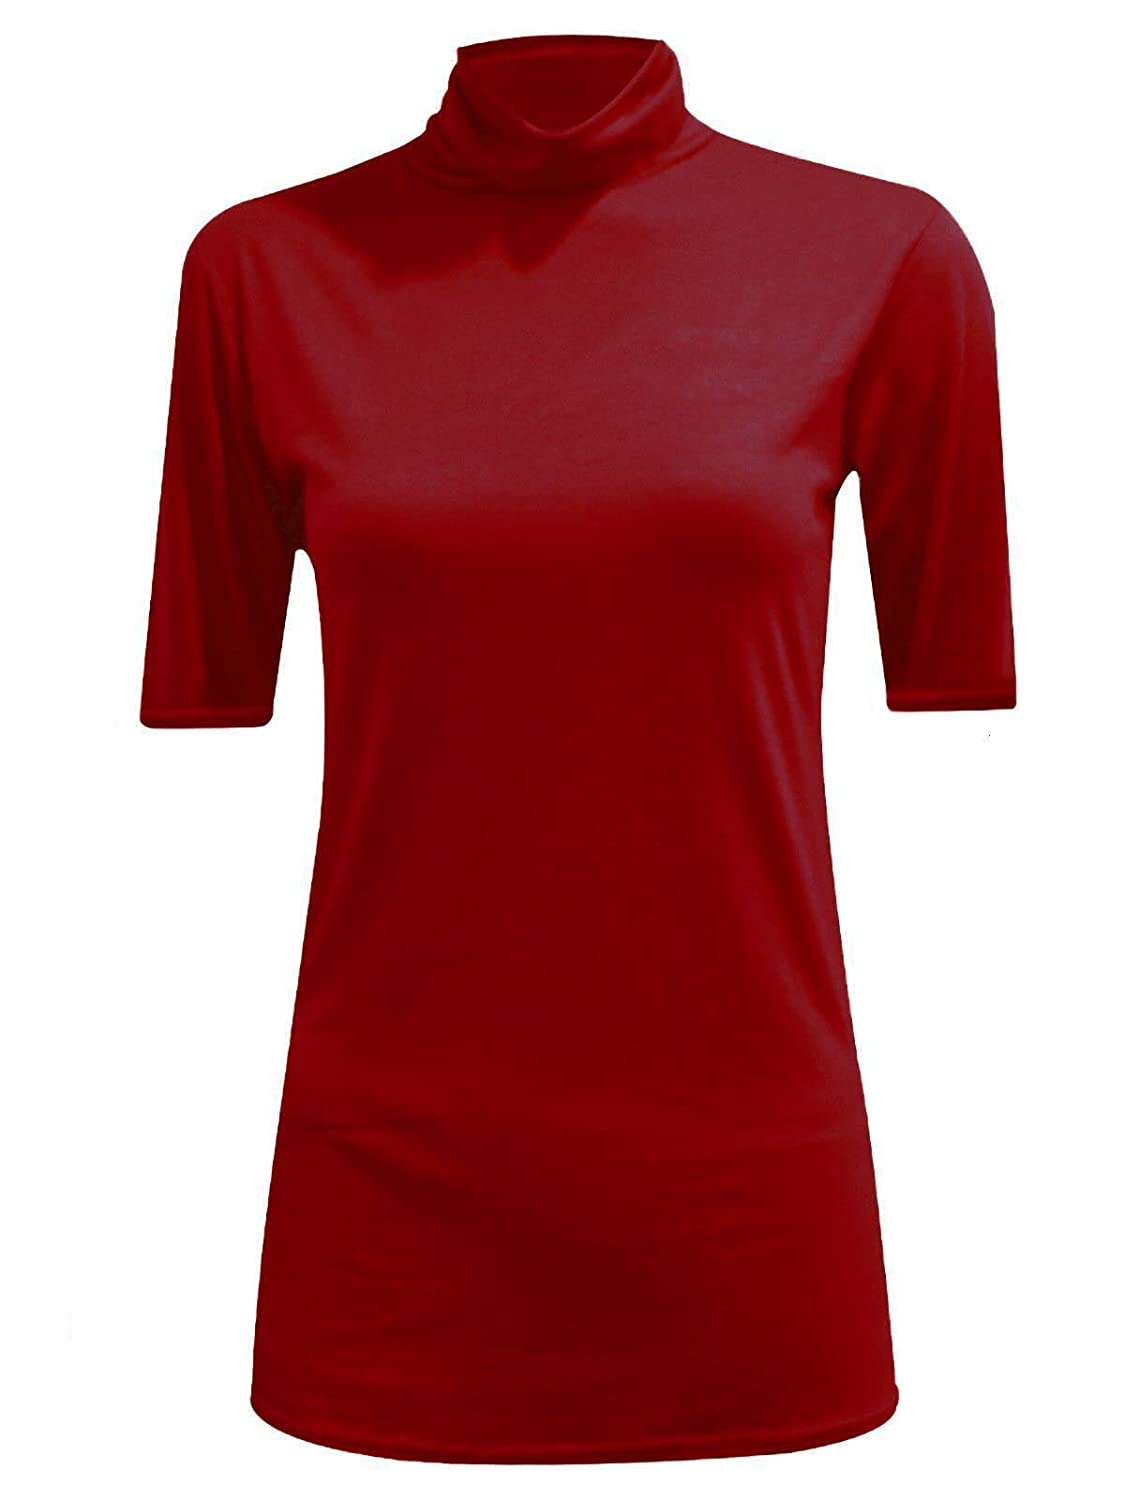 Womens Polo Roll Neck Jumper 3/4 Sleeves Top Ladies Turtle Neck Top Shirt Tees